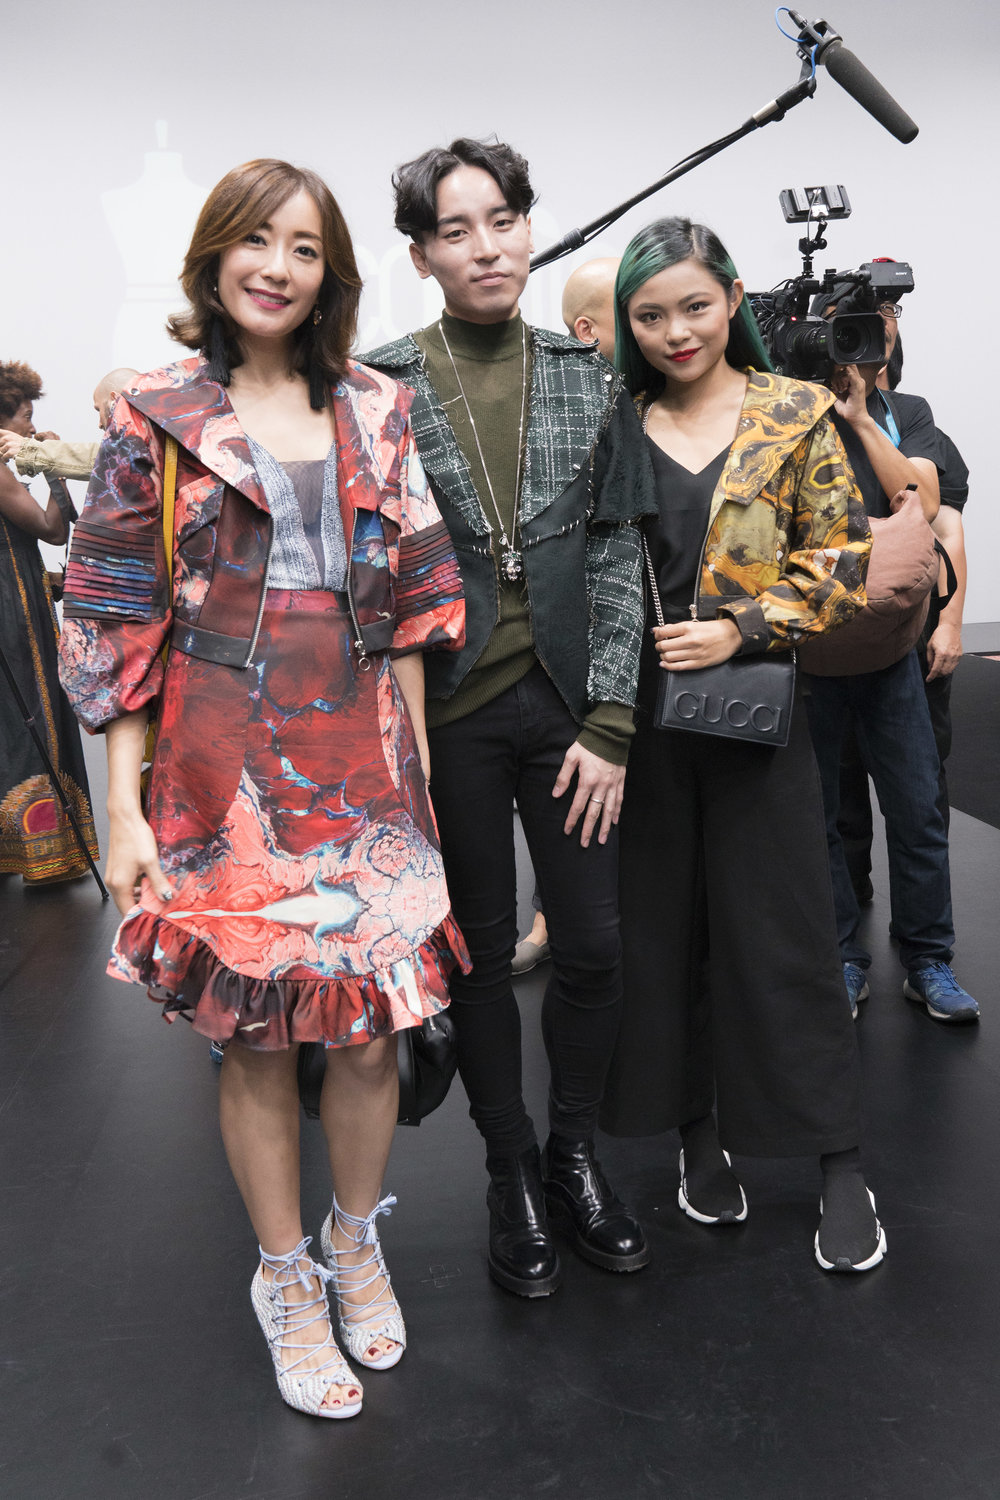 Nicola Cheung Young and Cecilia Ngan wear Angus Tsui to attend the Redress Design Award 2017 Grand Final Show